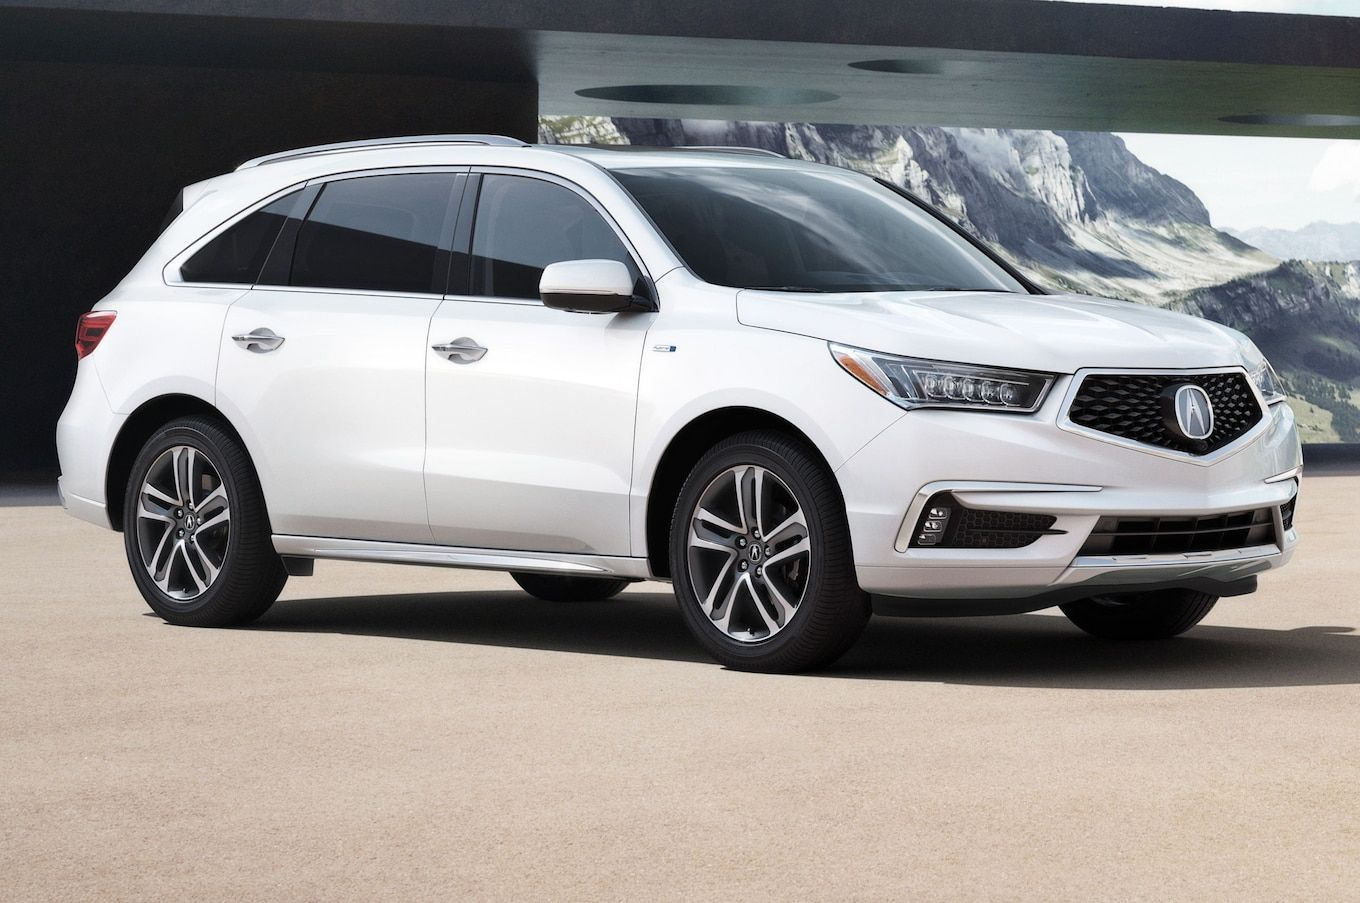 2017 Acura Mdx First Look Review Motor Trend Acura Suv Suv Acura Mdx